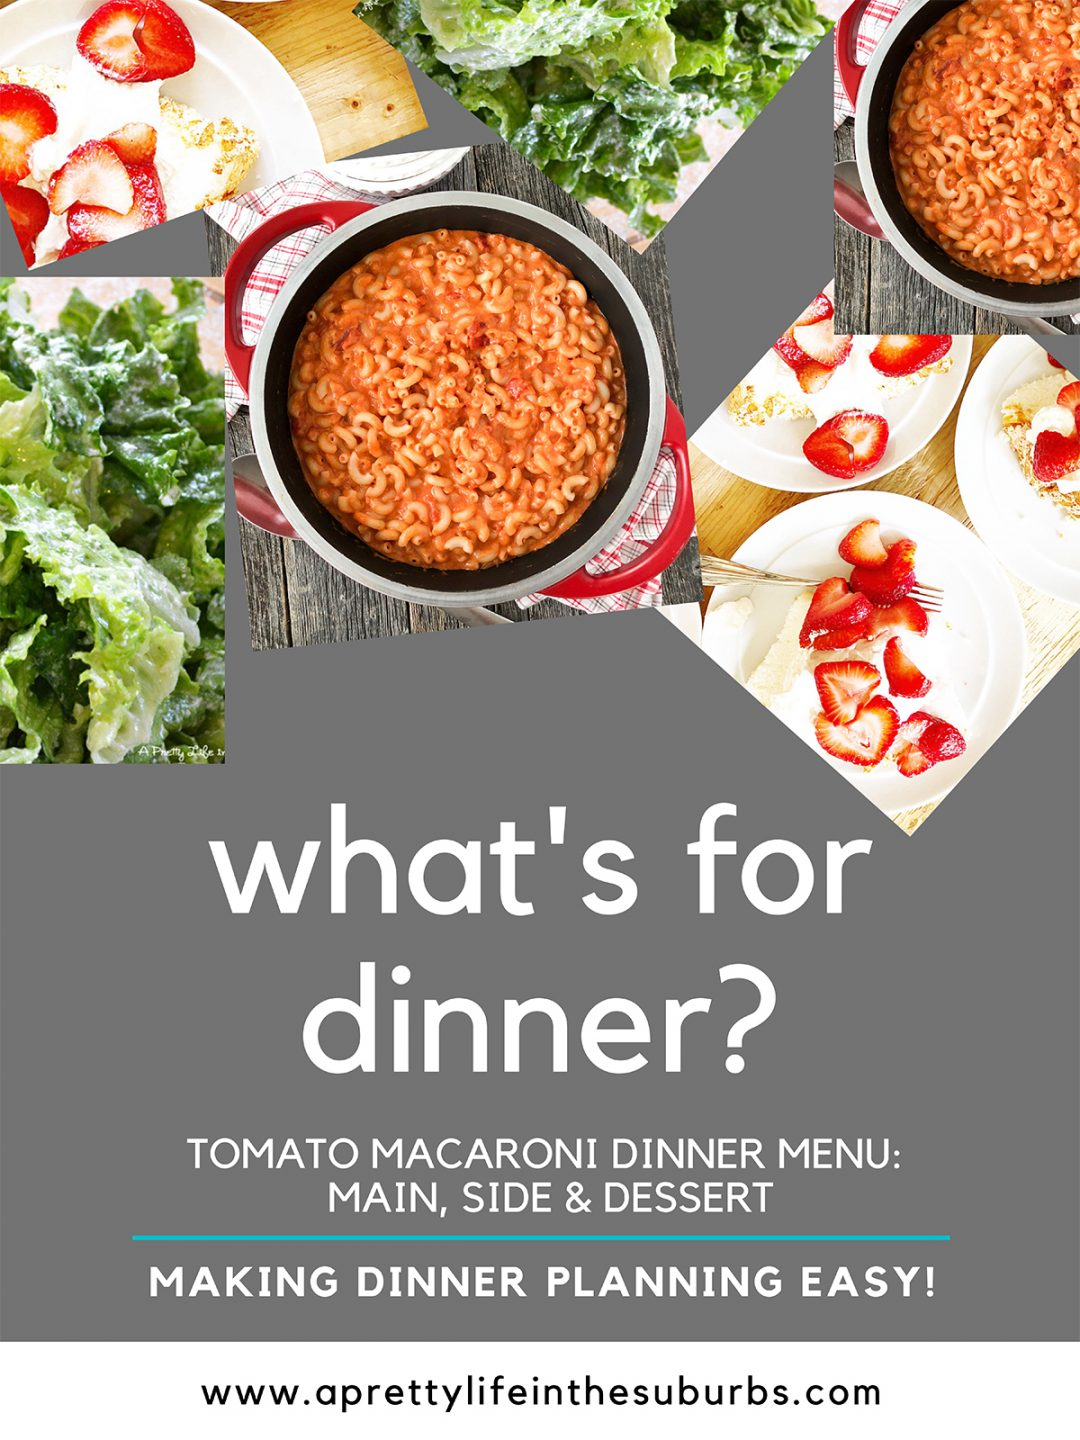 Tomato Macaroni Dinner Menu